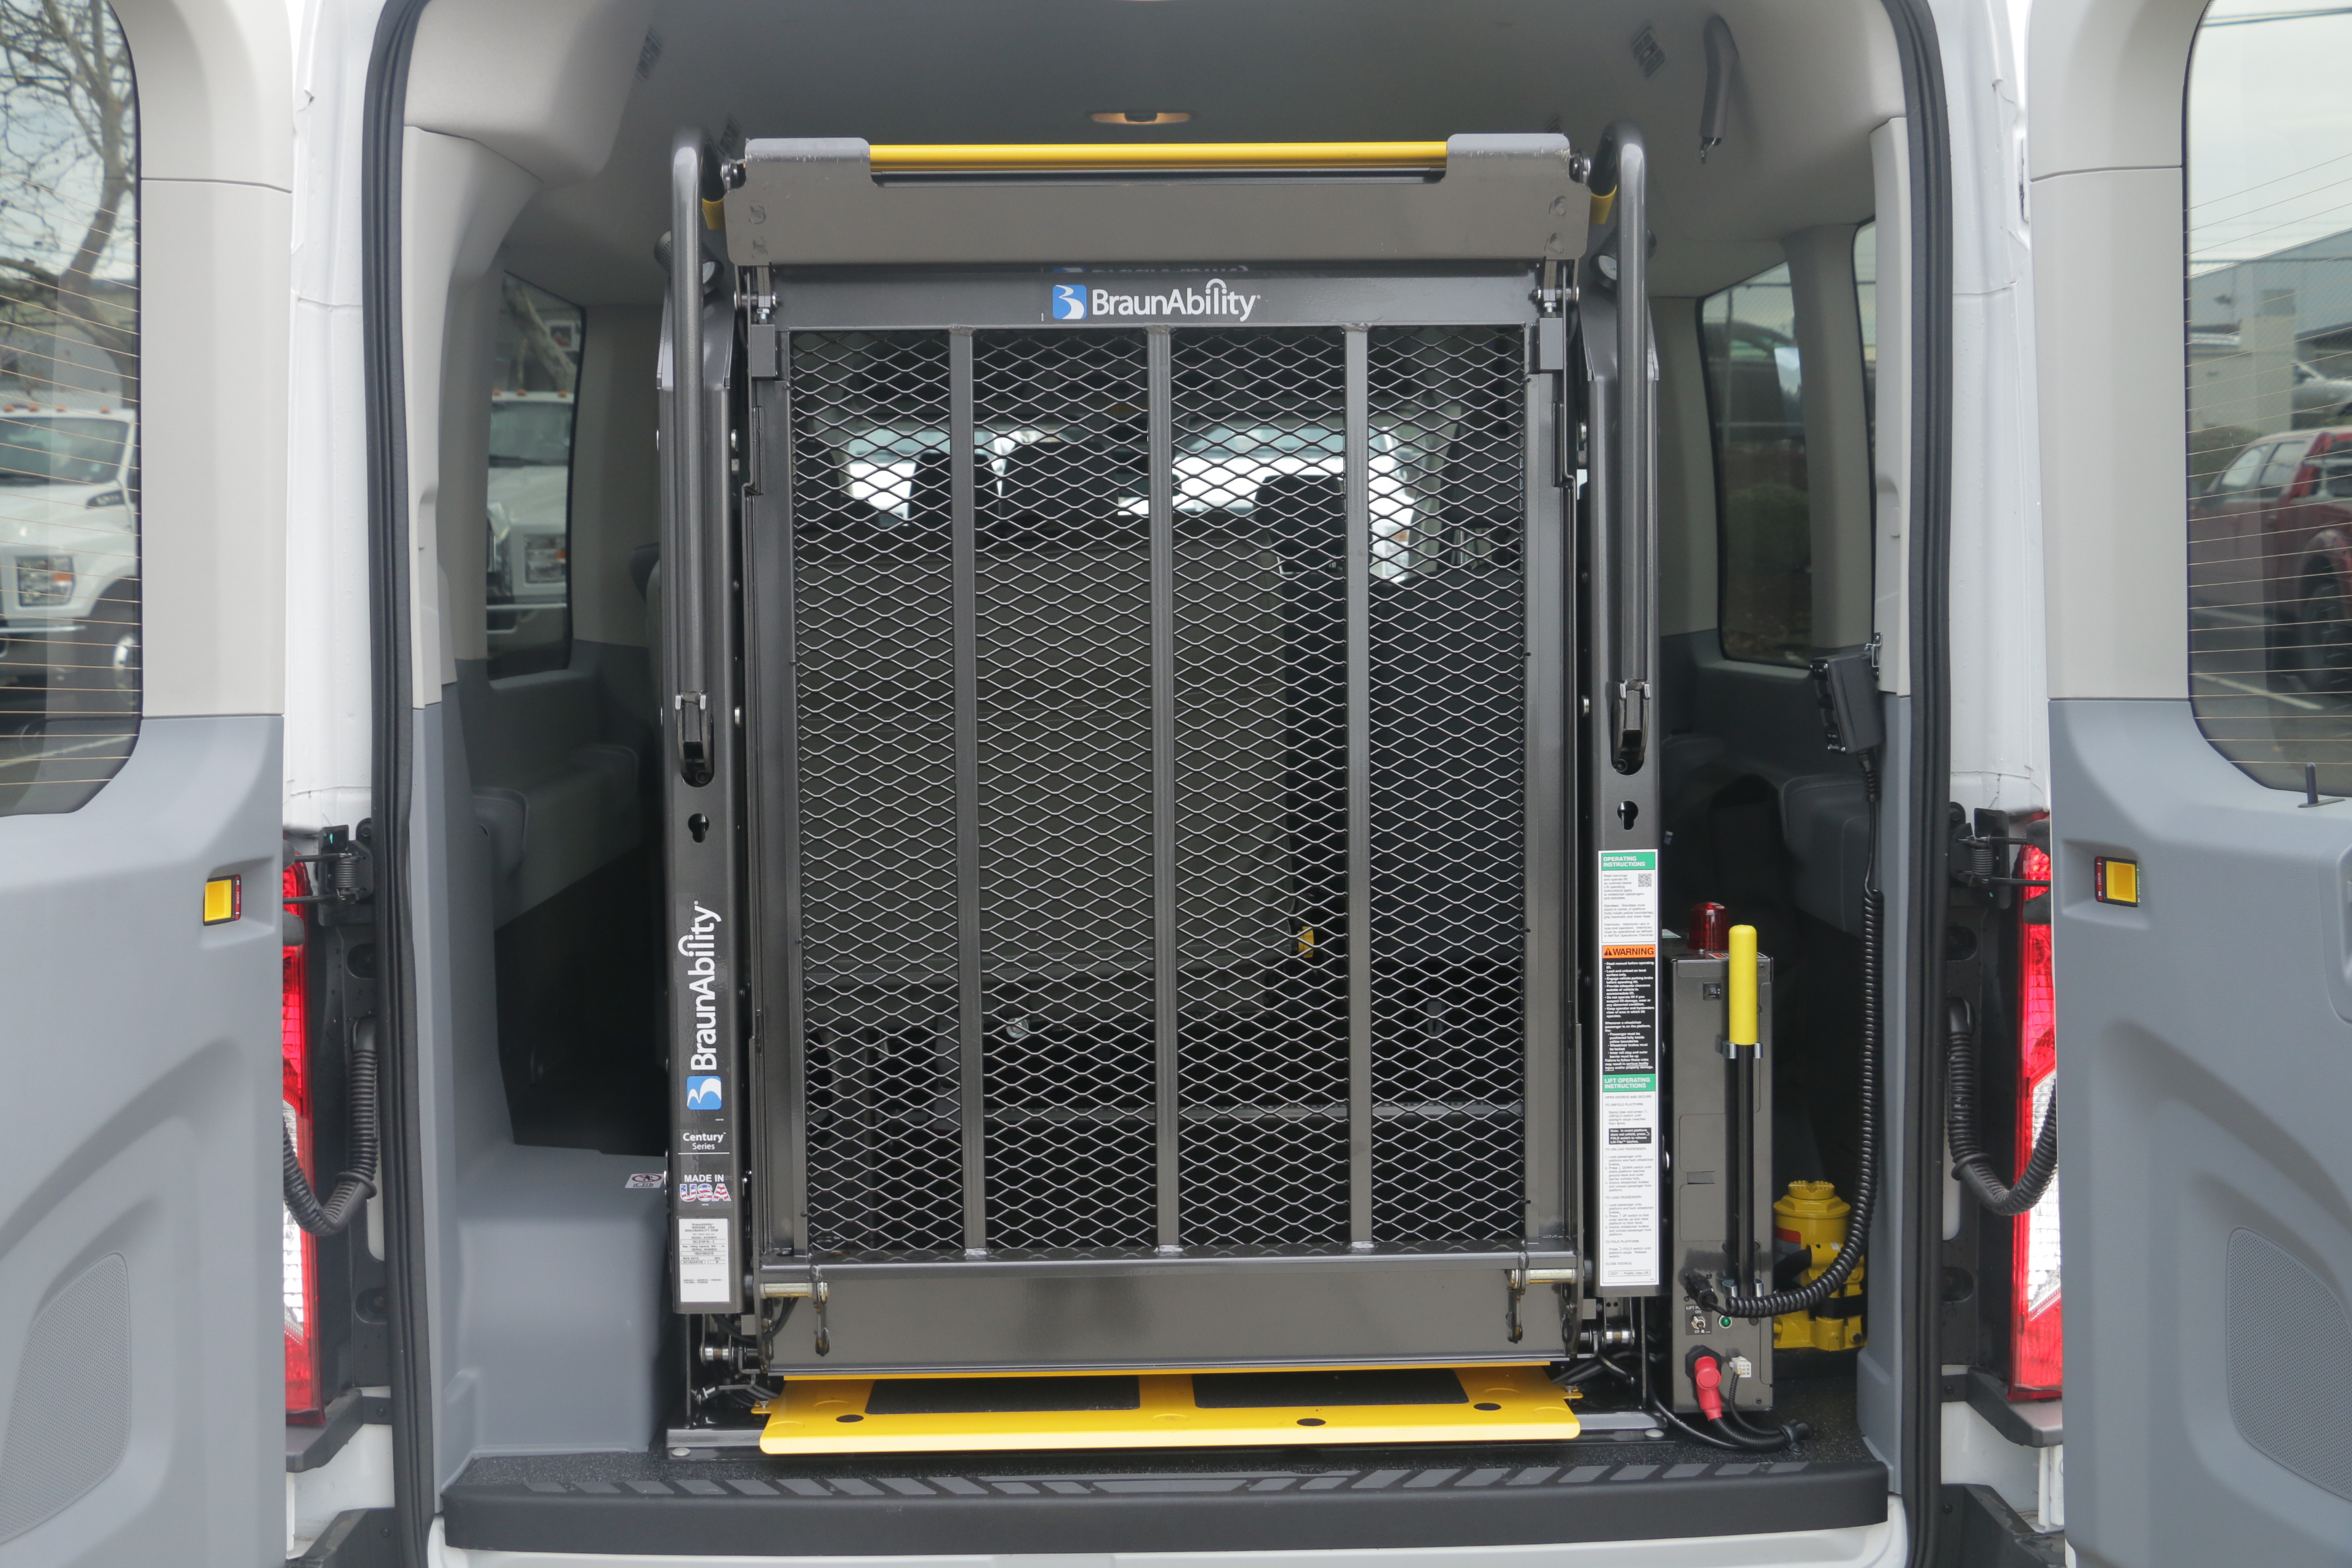 2015 Transit 350, Braun Industries Van Upfit #C54440 - photo 2